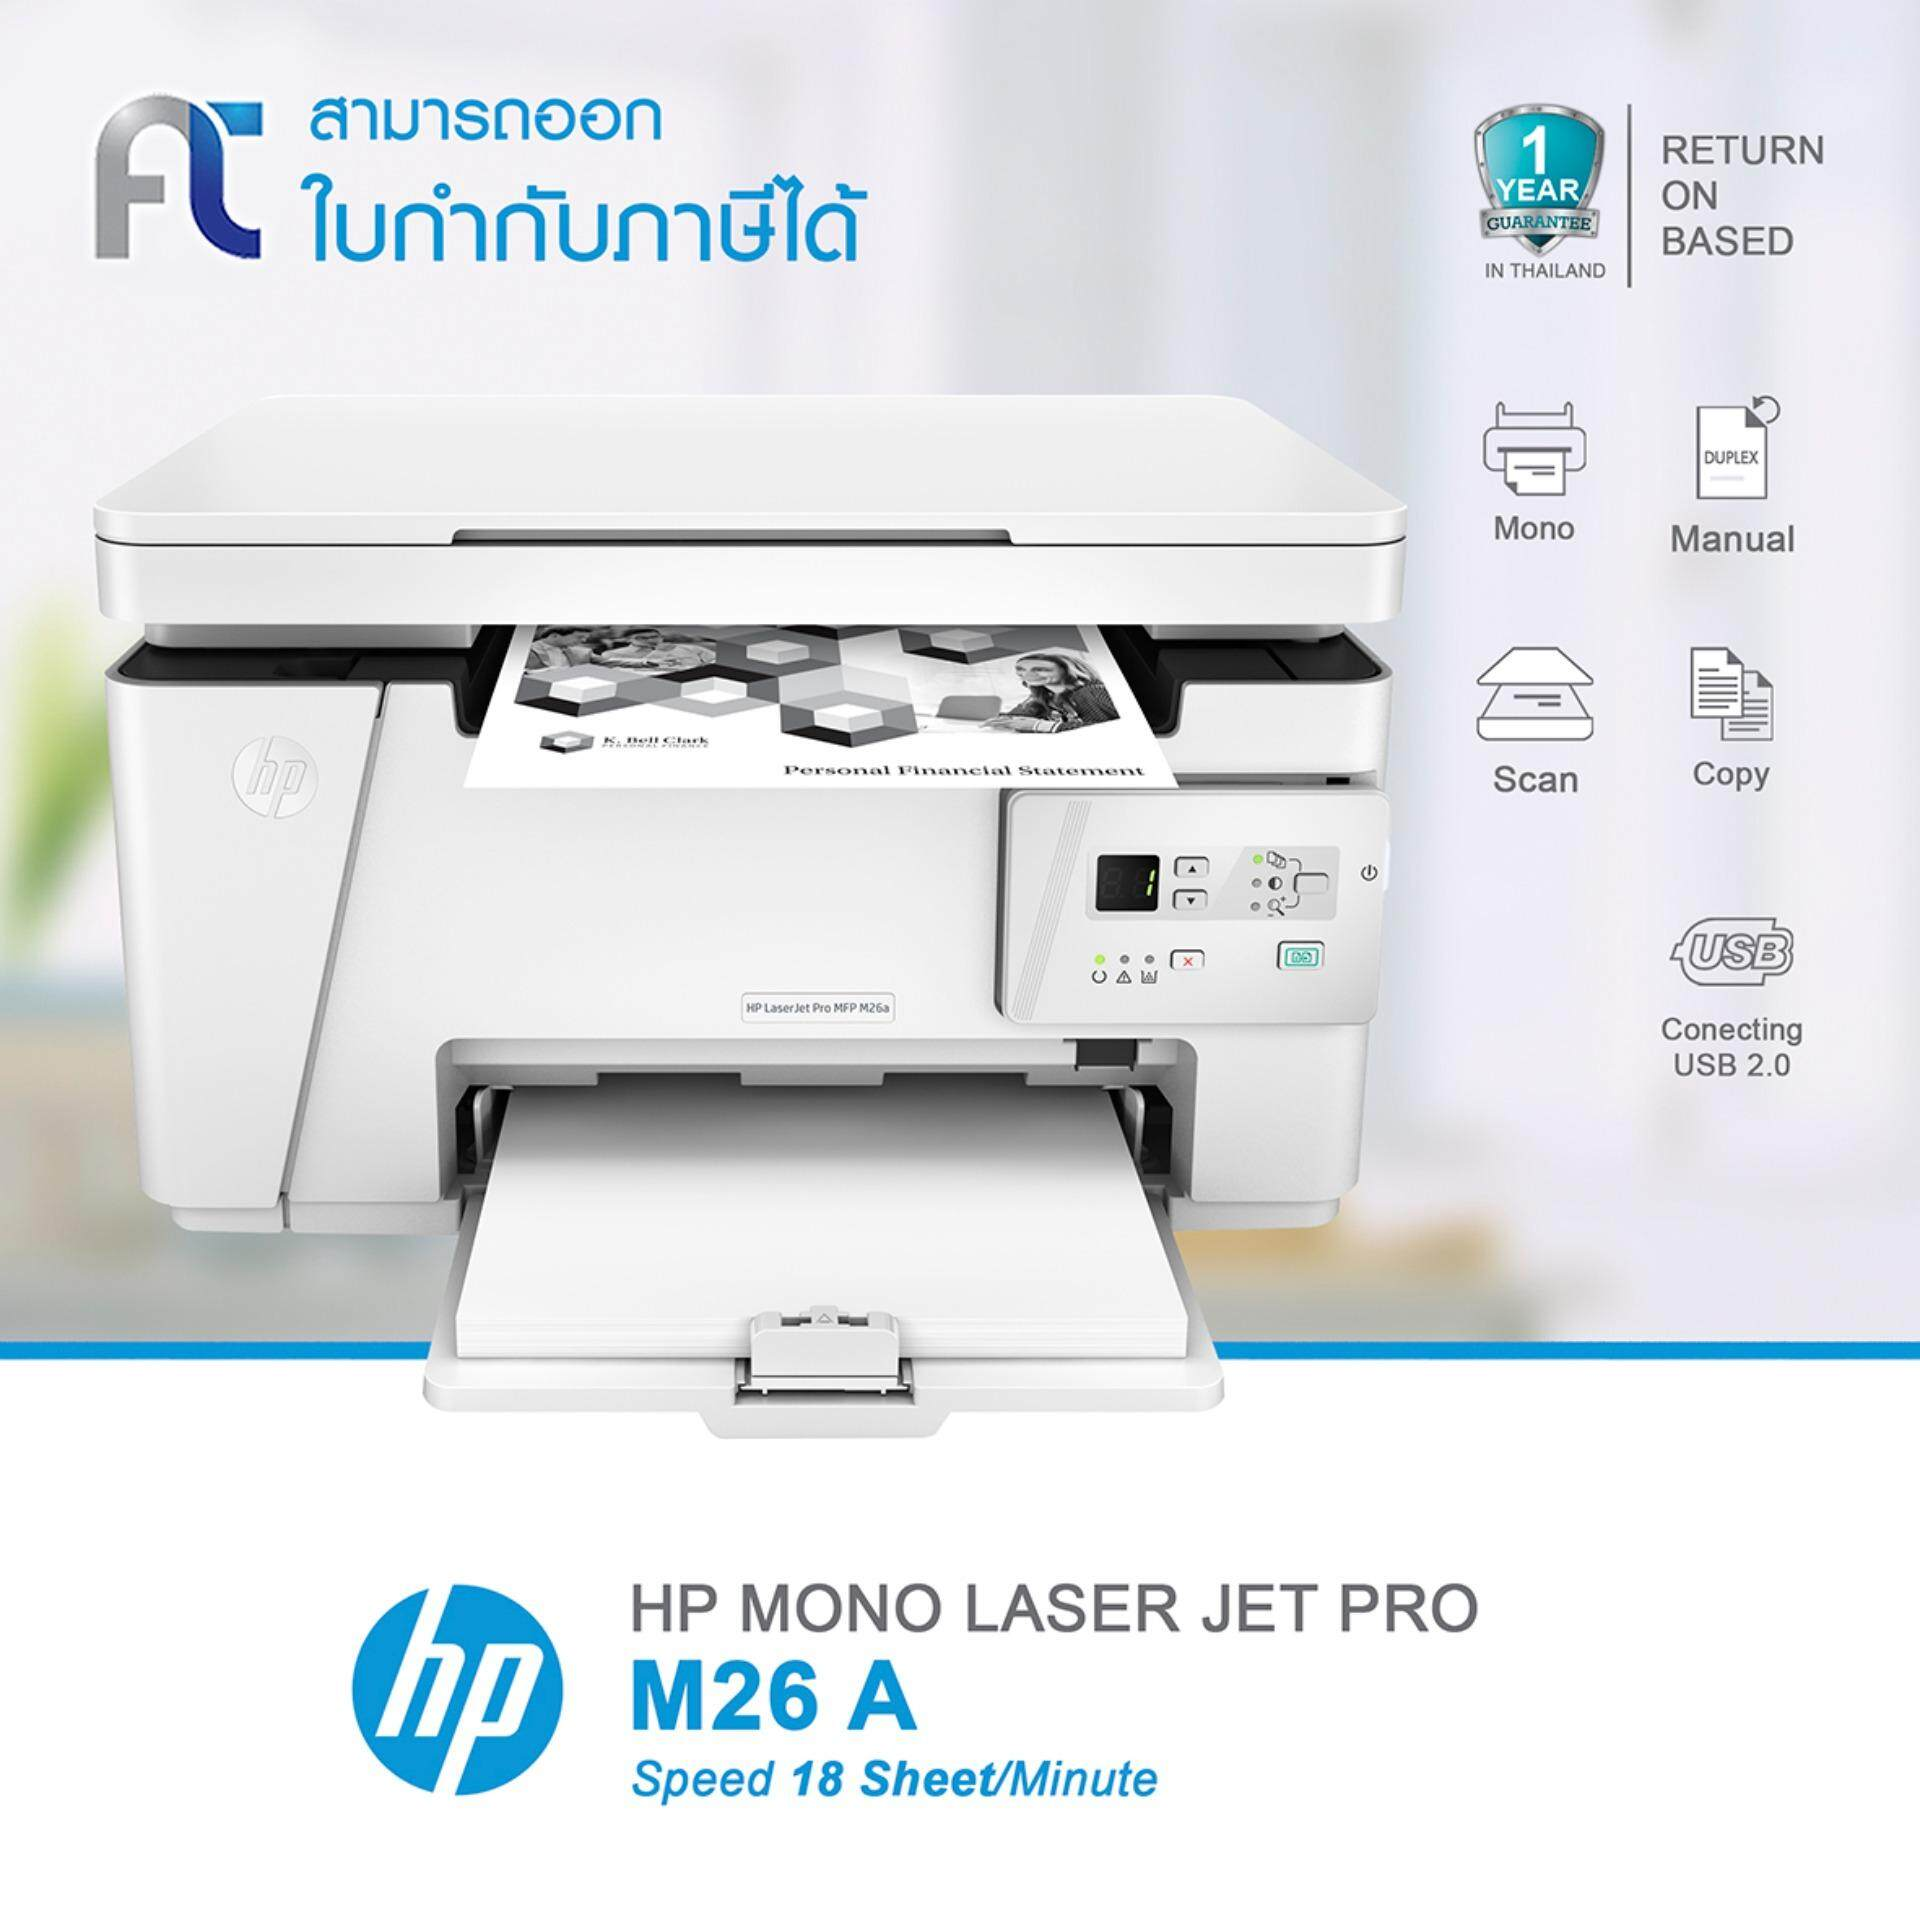 ส่วนลด 1 Year Warranty Hp Laserjet Pro Mfp M26A Printer Print Copy Scan T0L49A Hp กรุงเทพมหานคร